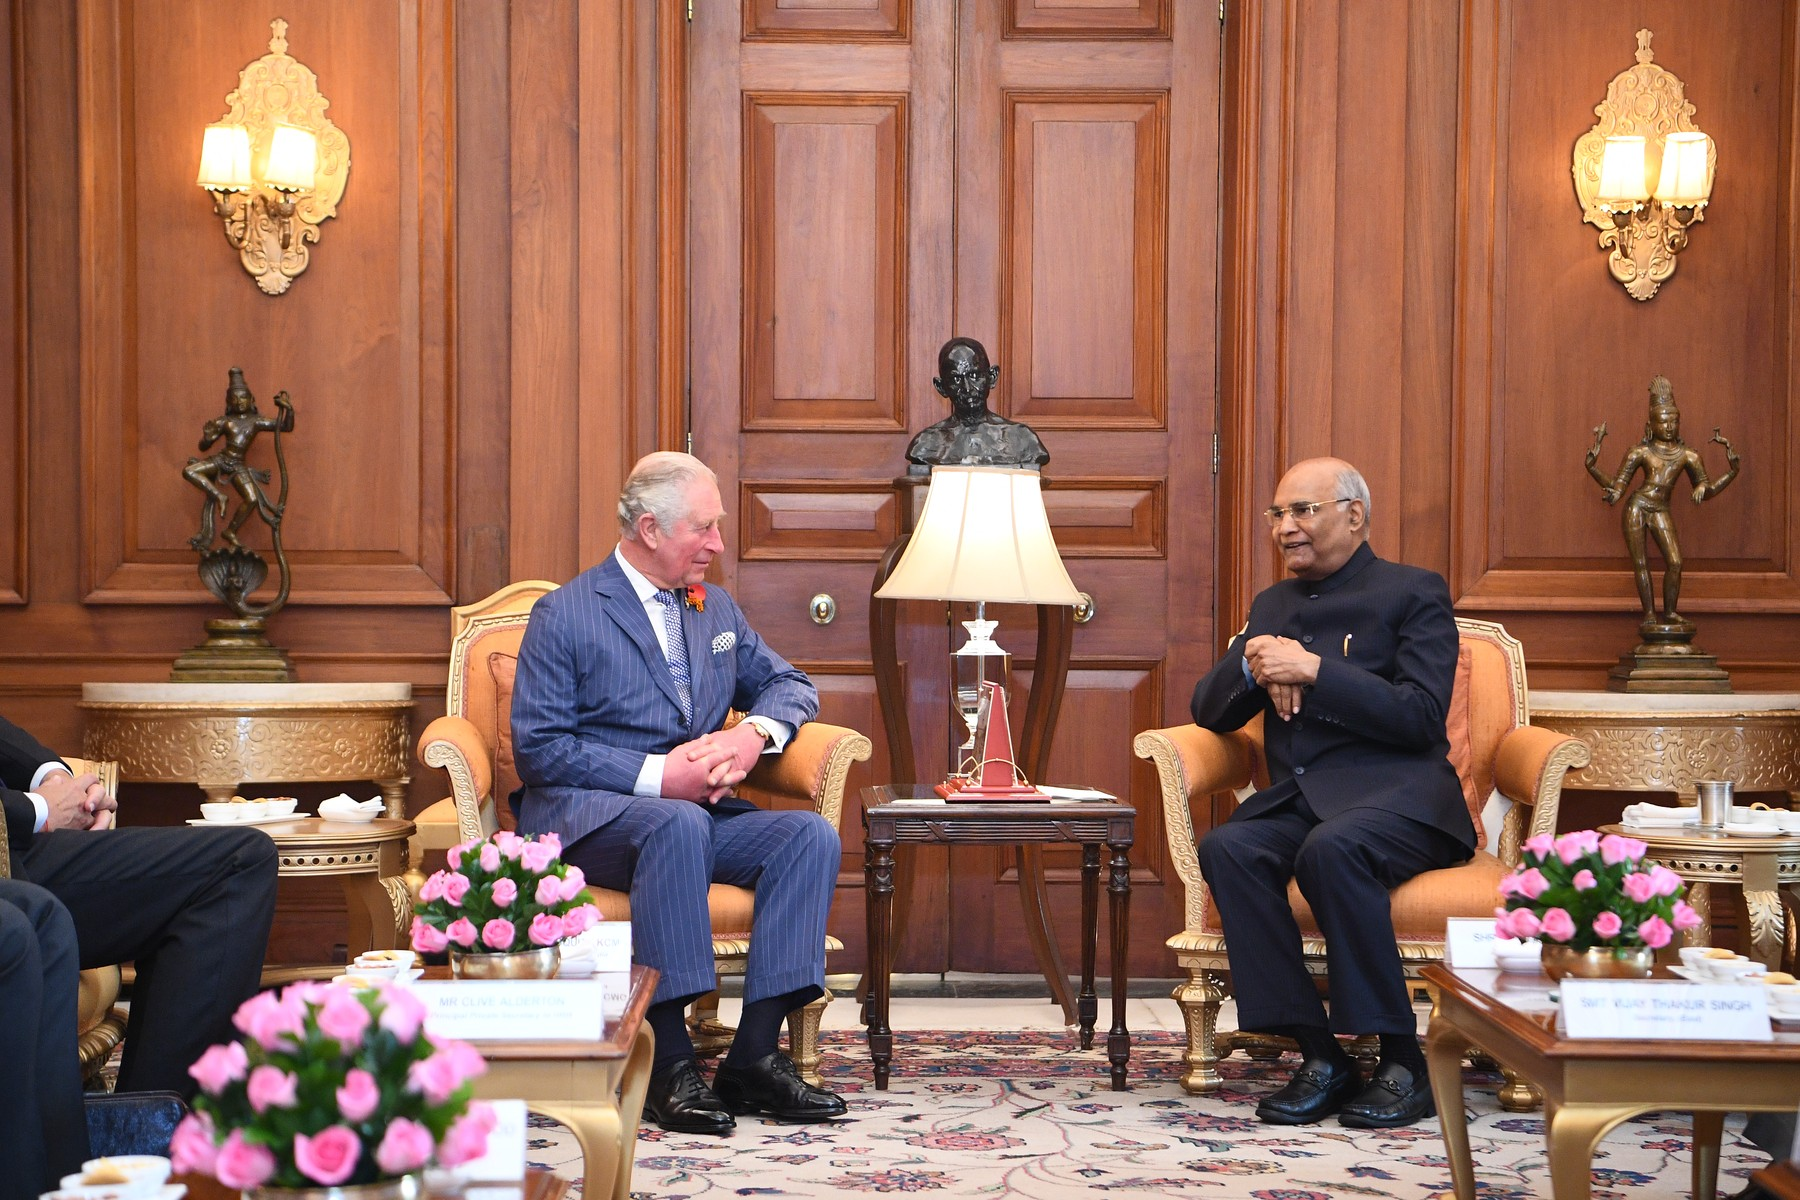 The Prince of Wales meets President Ram Nath Kovind at his official residence, Rashtrapati Bhavan, New Delhi, on day one of the royal visit to India., Image: 482574068, License: Rights-managed, Restrictions: , Model Release: no, Credit line: Victoria Jones / PA Images / Profimedia